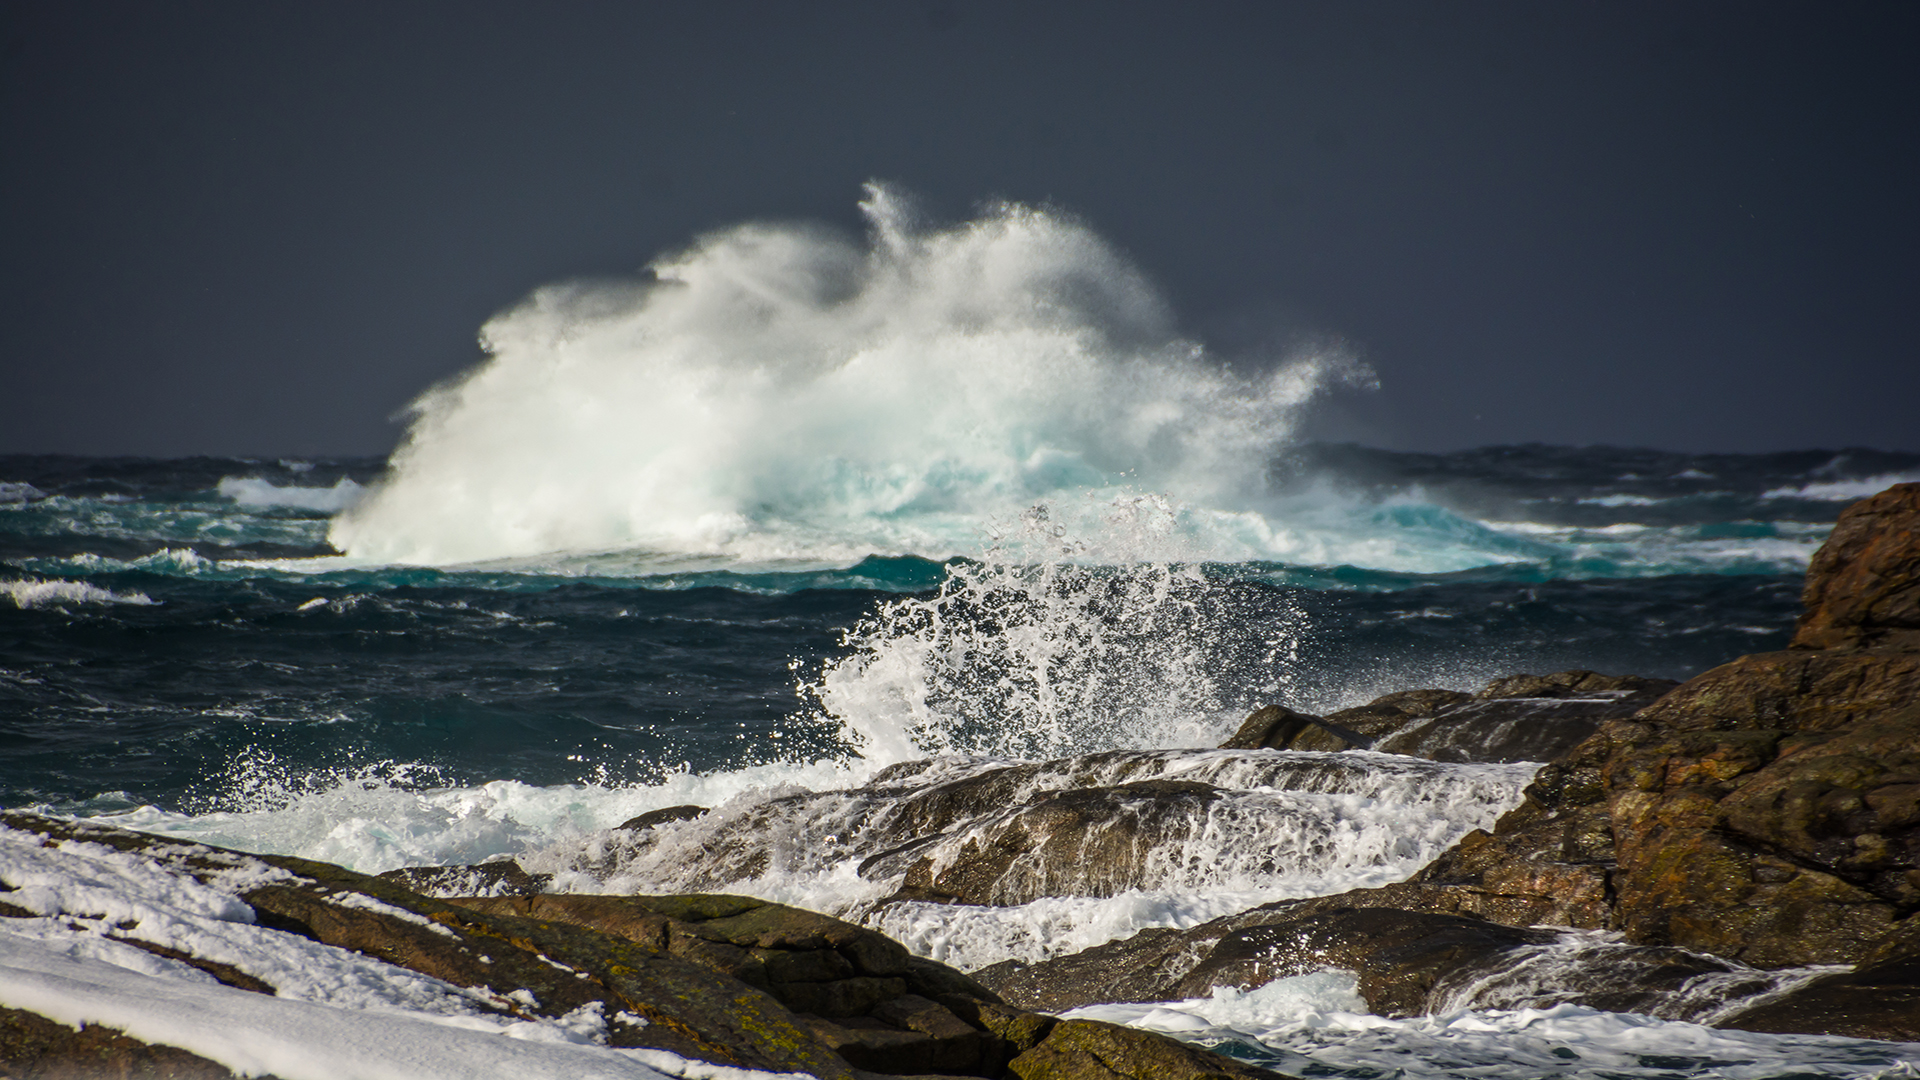 """The stormy Sea   """"Dance with waves, move with the sea. Let the rythm of the water set your soul free."""" Christy Ann Martine"""